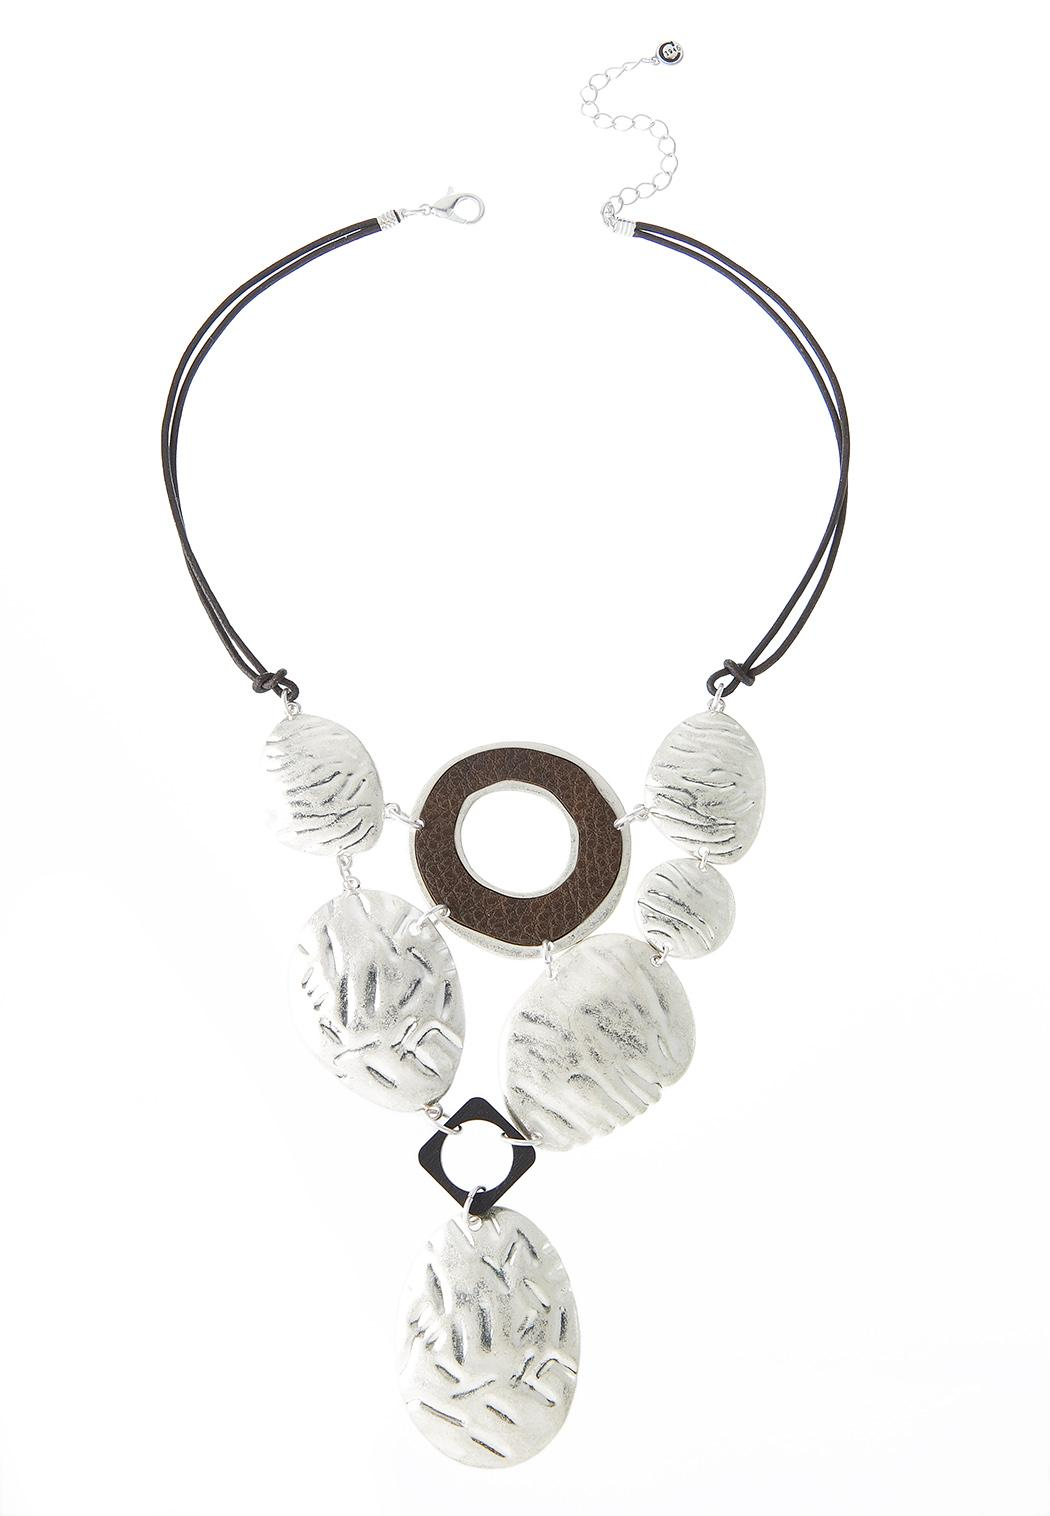 Etched Worn Silver Cord Necklace